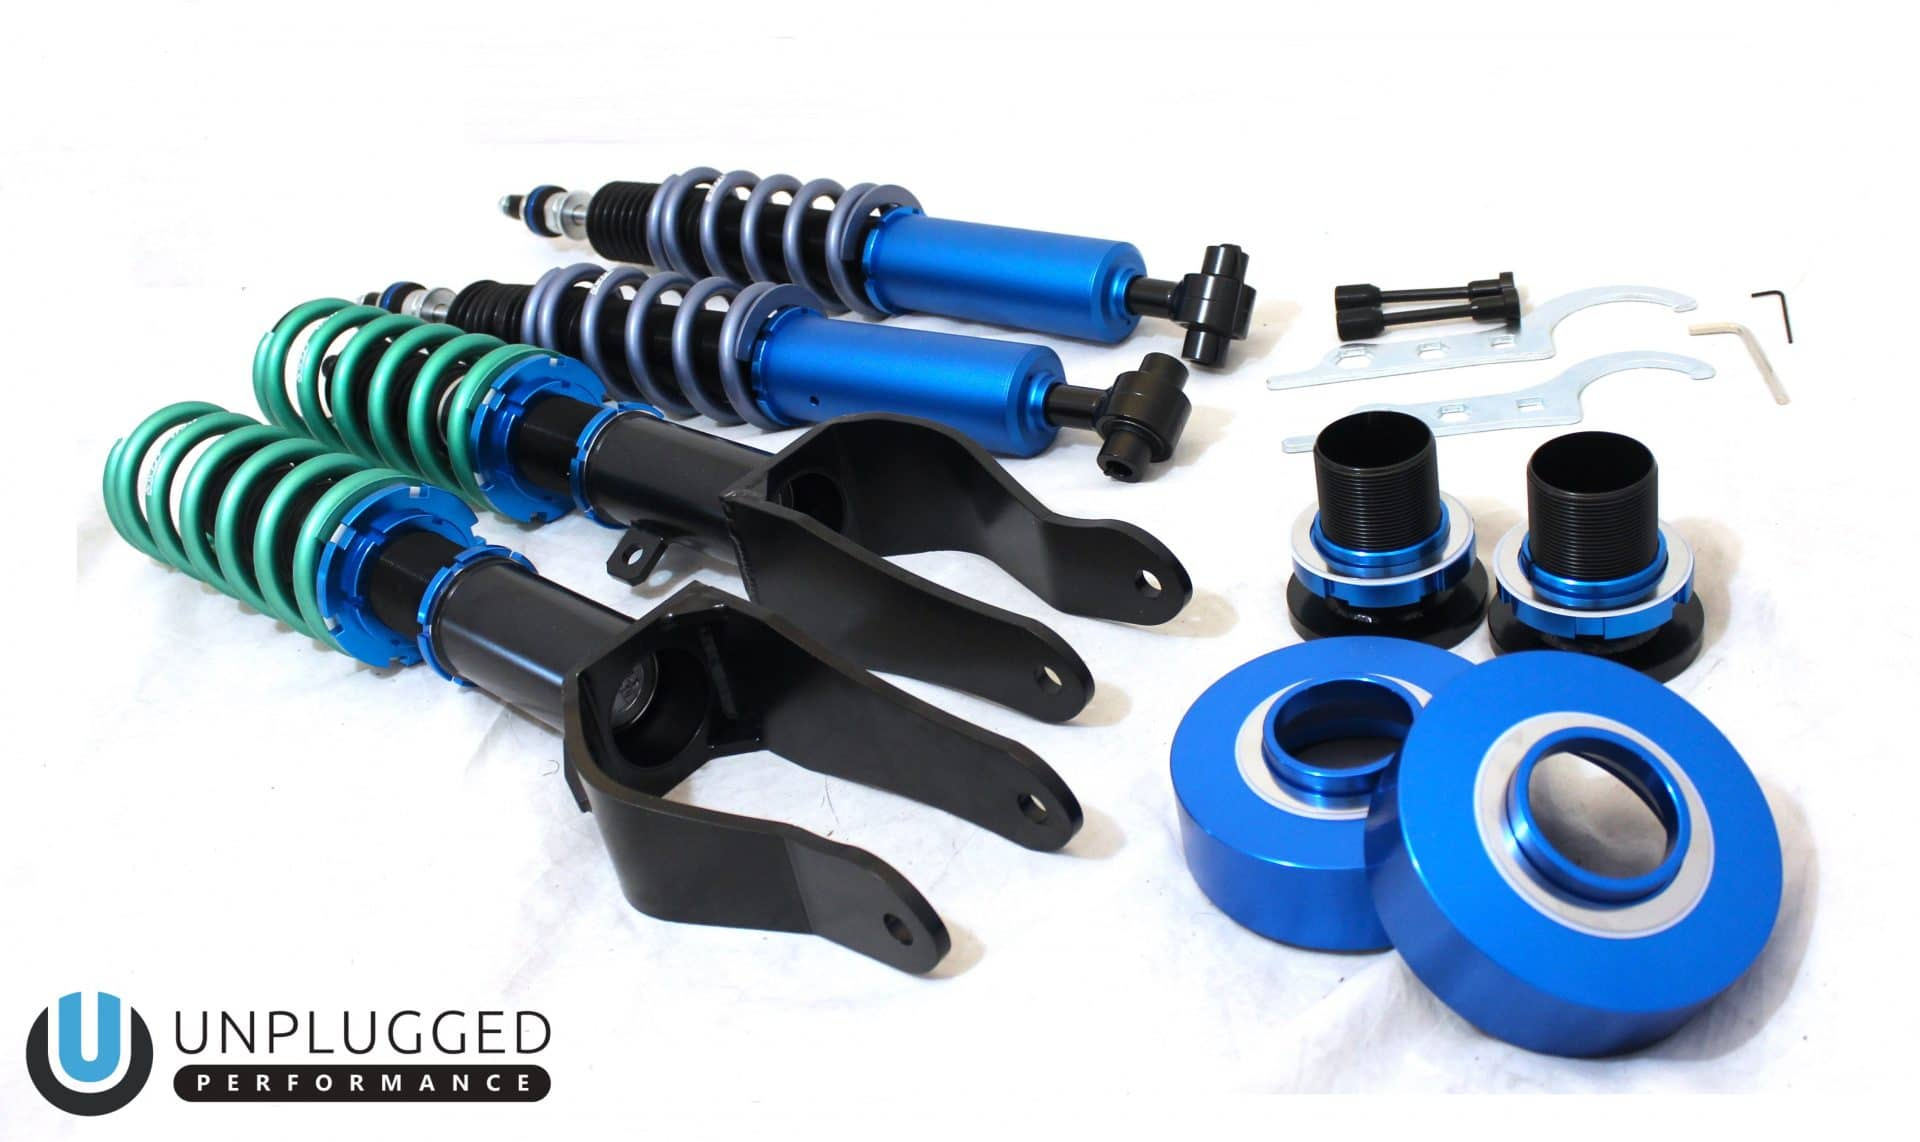 Unplugged Performance Coilover Suspension Kit for Tesla Model 3Unplugged PerformanceEV Tuning